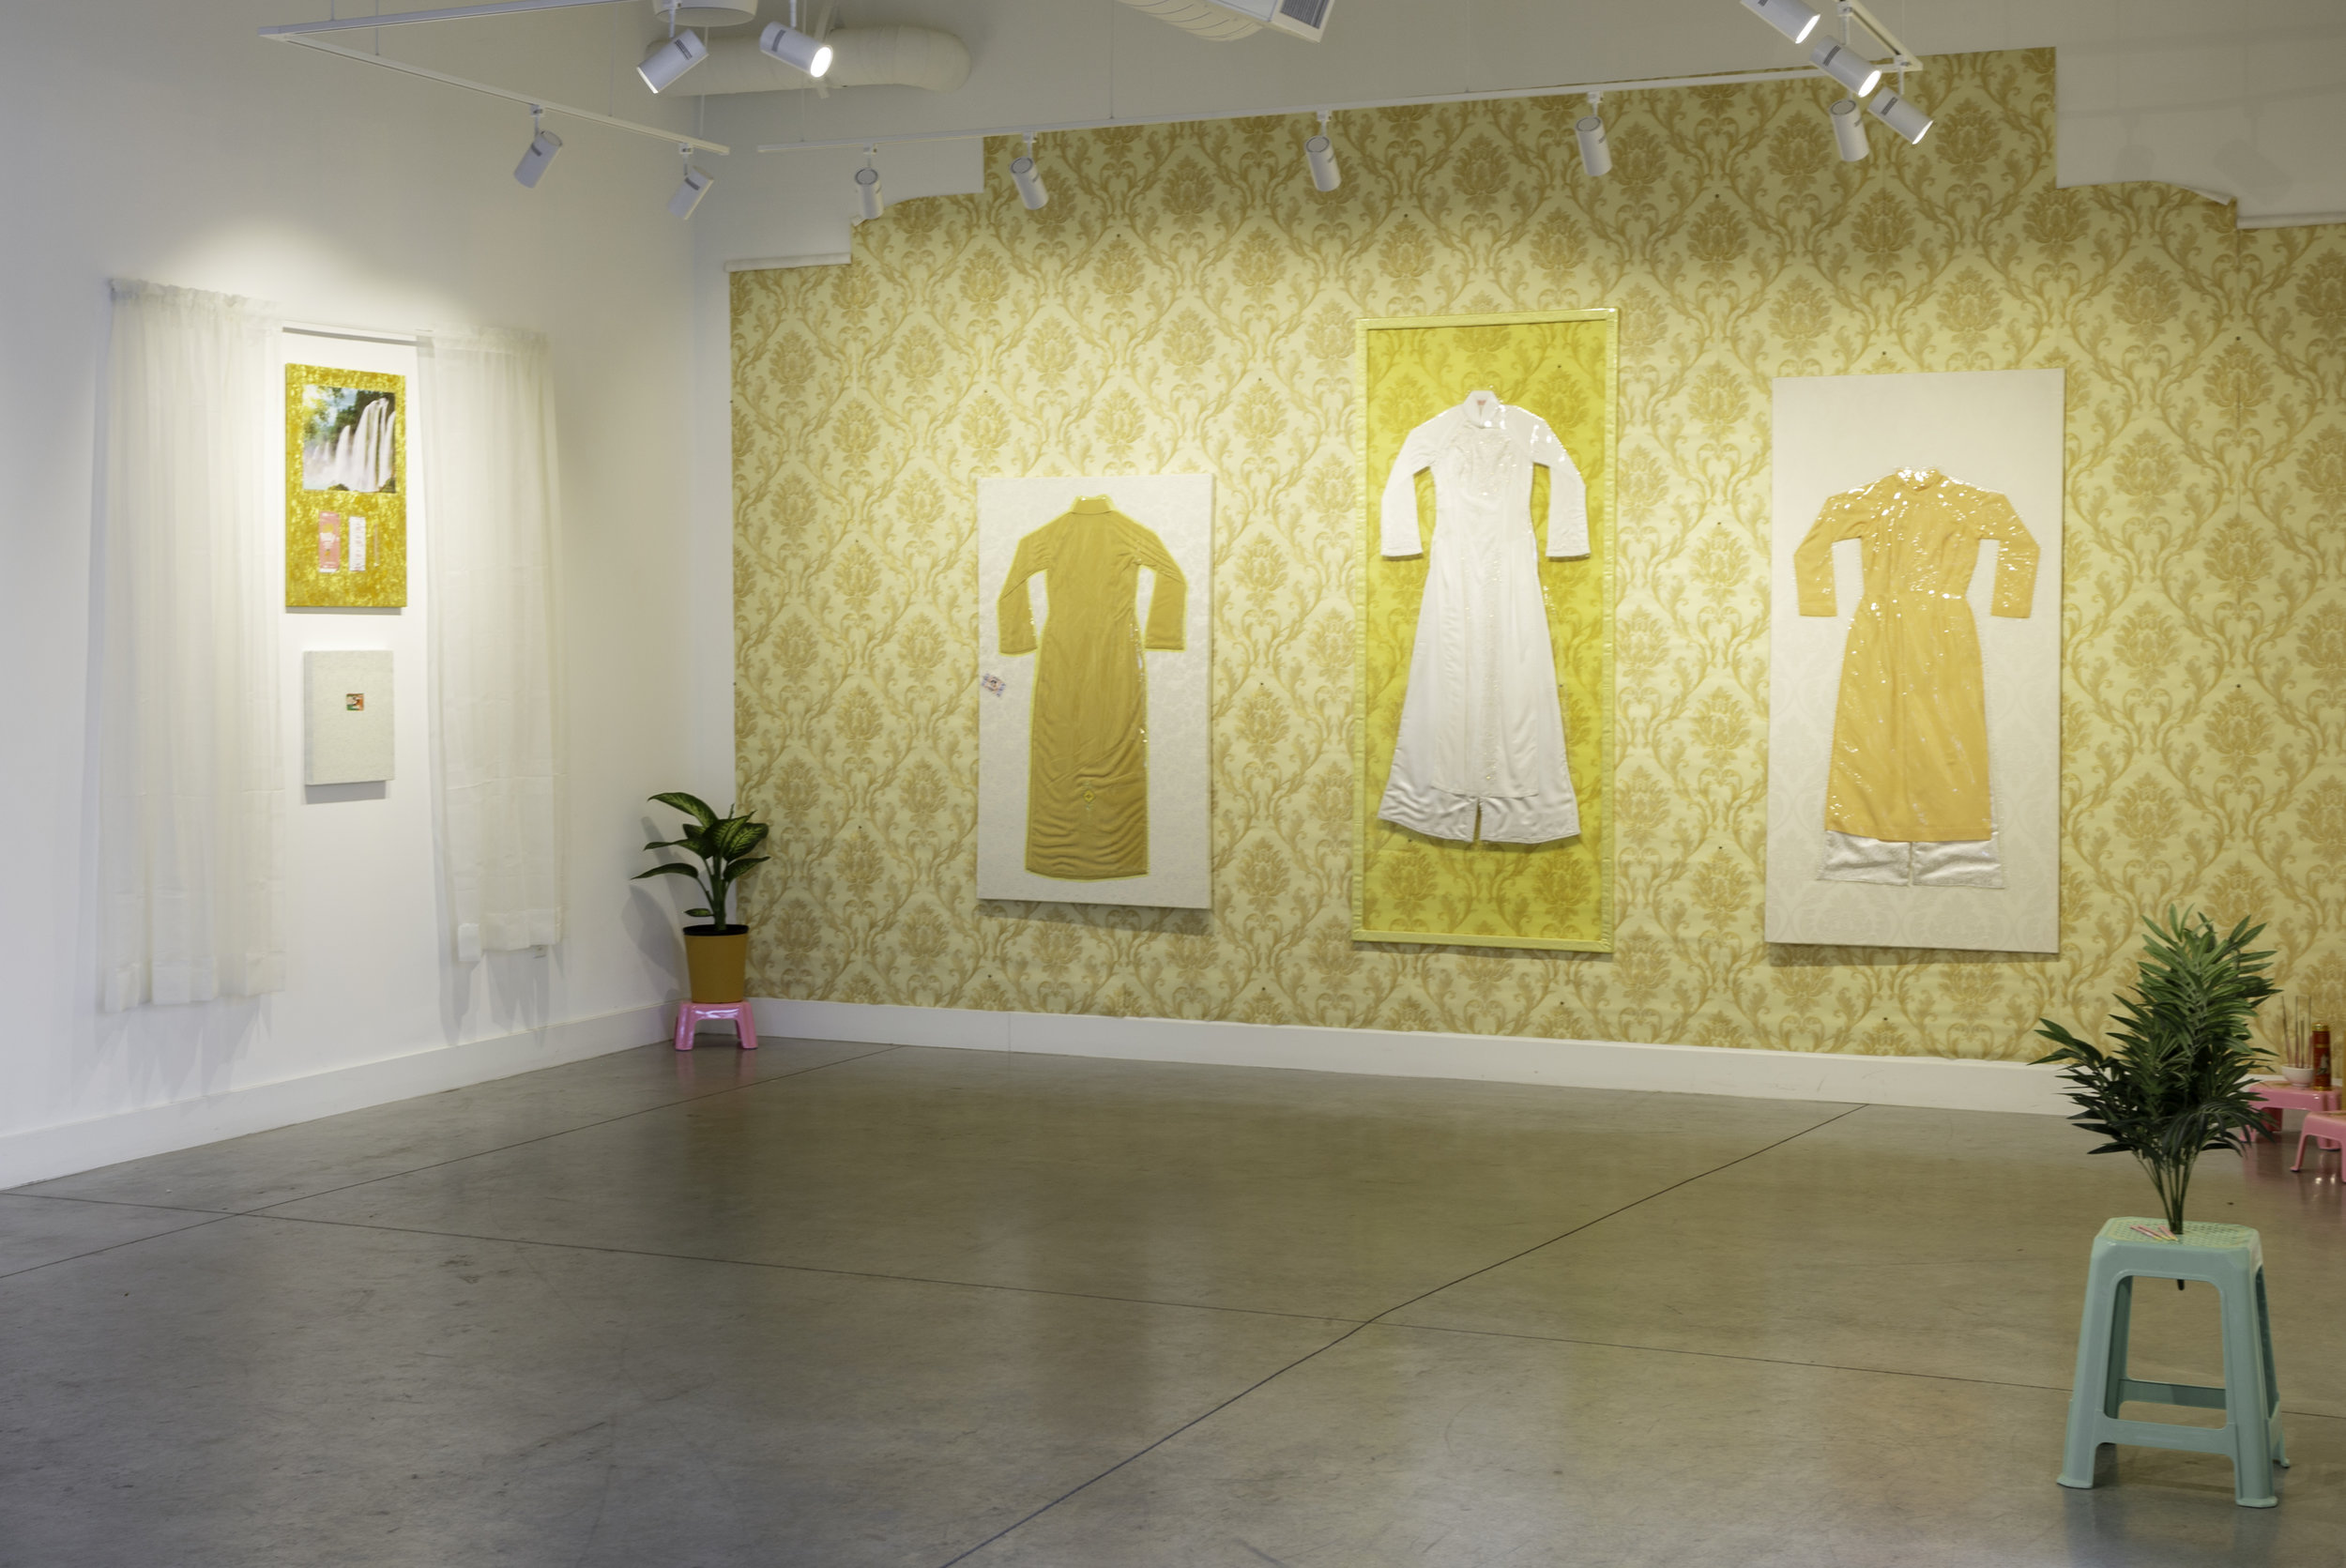 """""""Miss Vietnam"""" abstracts and analyzes mixed-race experience via symbols of Vietnamese femininity, yellow damask wallpaper (à la Charlotte Perkins Stetson's 1892 short story """"The Yellow Wallpaper""""), and mass-produced imported confections. The exhibition blends imagery of unnamed tropical jungles and Victorian interiors to create a disjointed memoryscape where a longing for cultural connection is endlessly sought but never reconciled.  photo Sara Ford"""